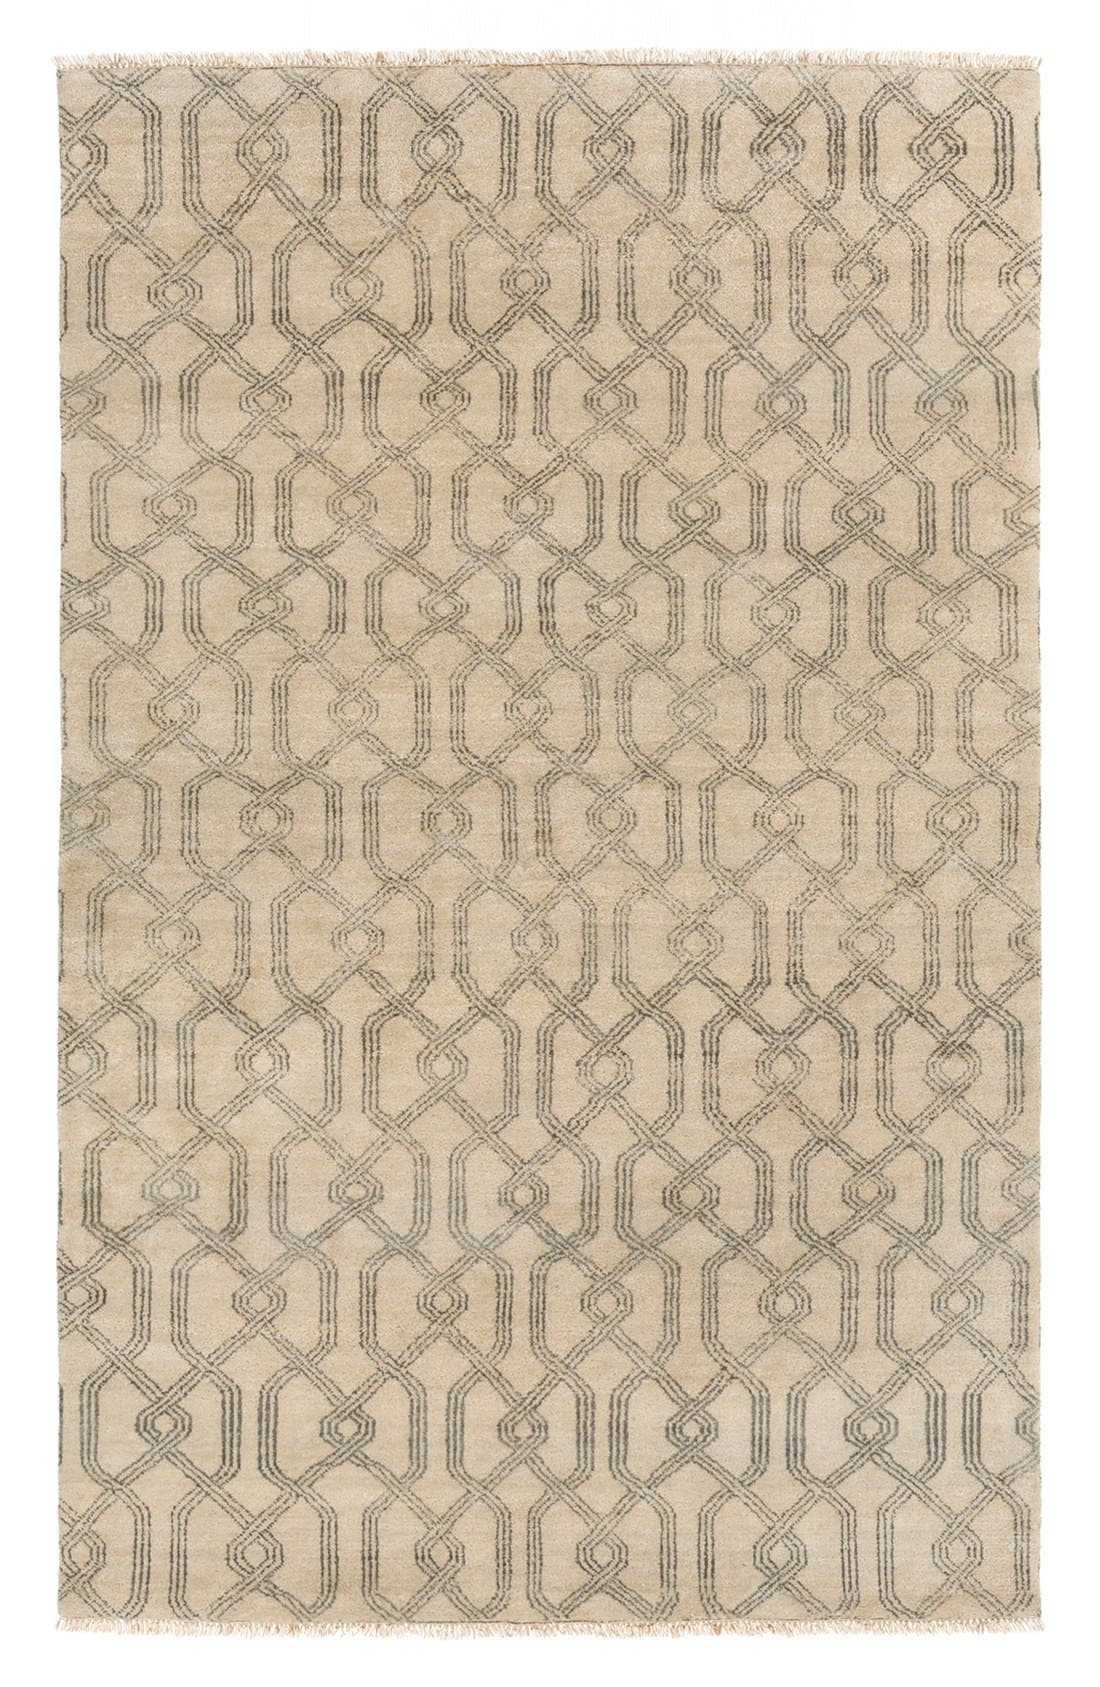 Alternate Image 1 Selected - Surya Home 'Stanton' Wool & Cotton Rug